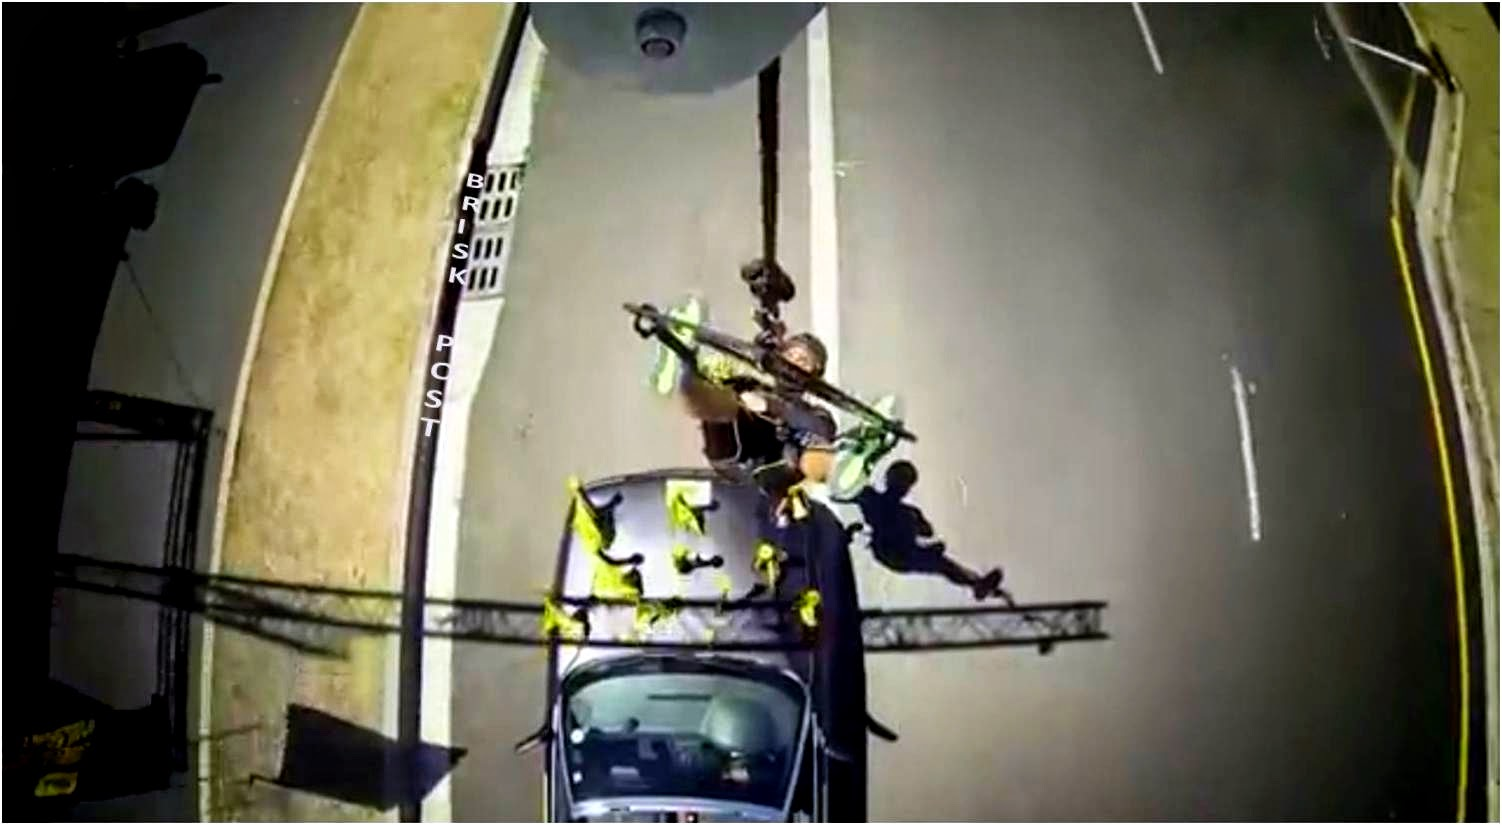 Stunt performer and dance master Salman collecting flags, hanging over a slowly running car